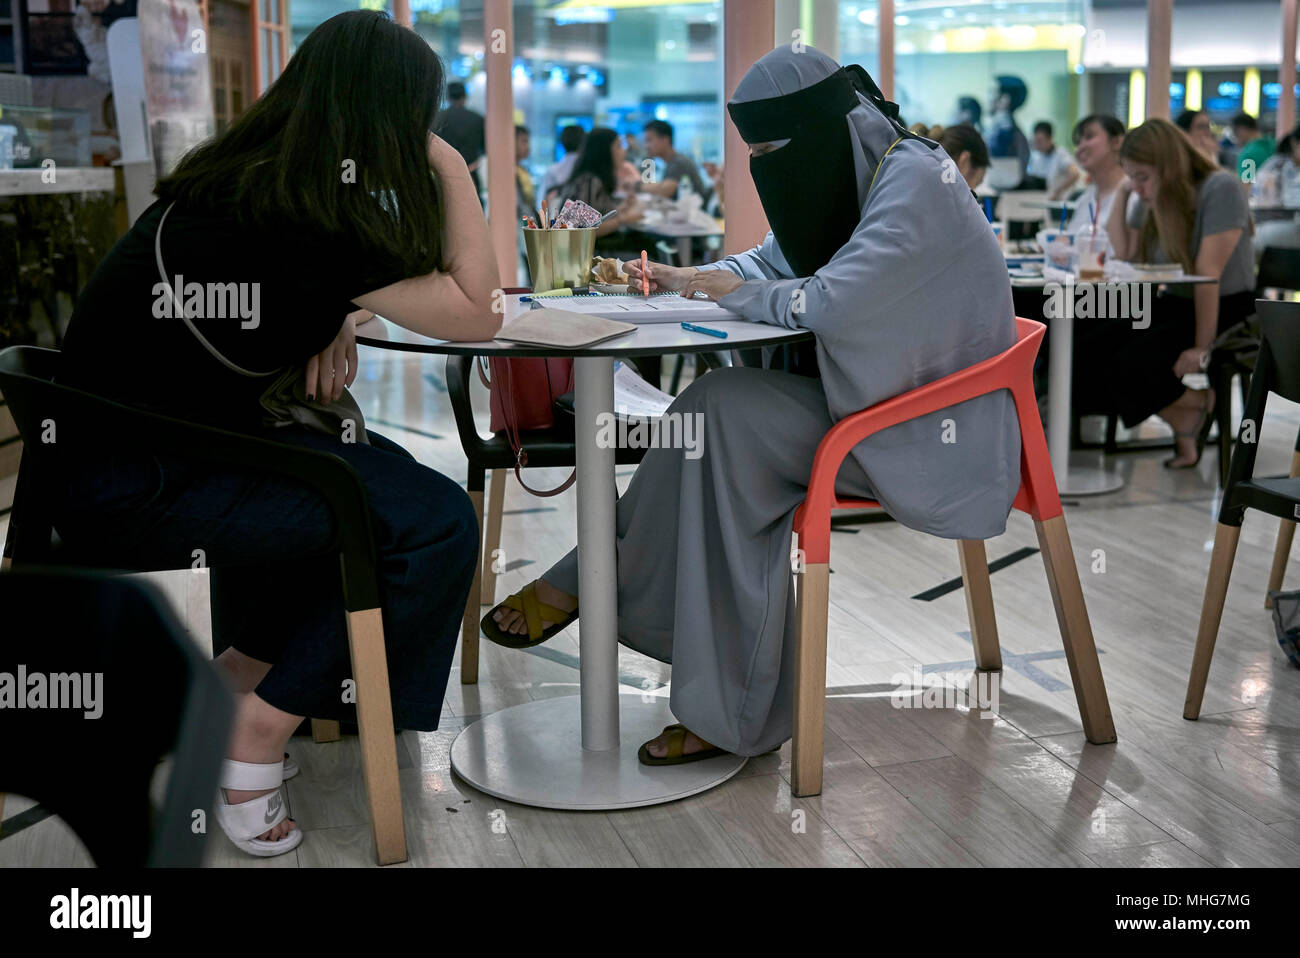 Muslim woman dressed in a traditional Burka studying in a cafe interior. Thailand Southeast Asia - Stock Image